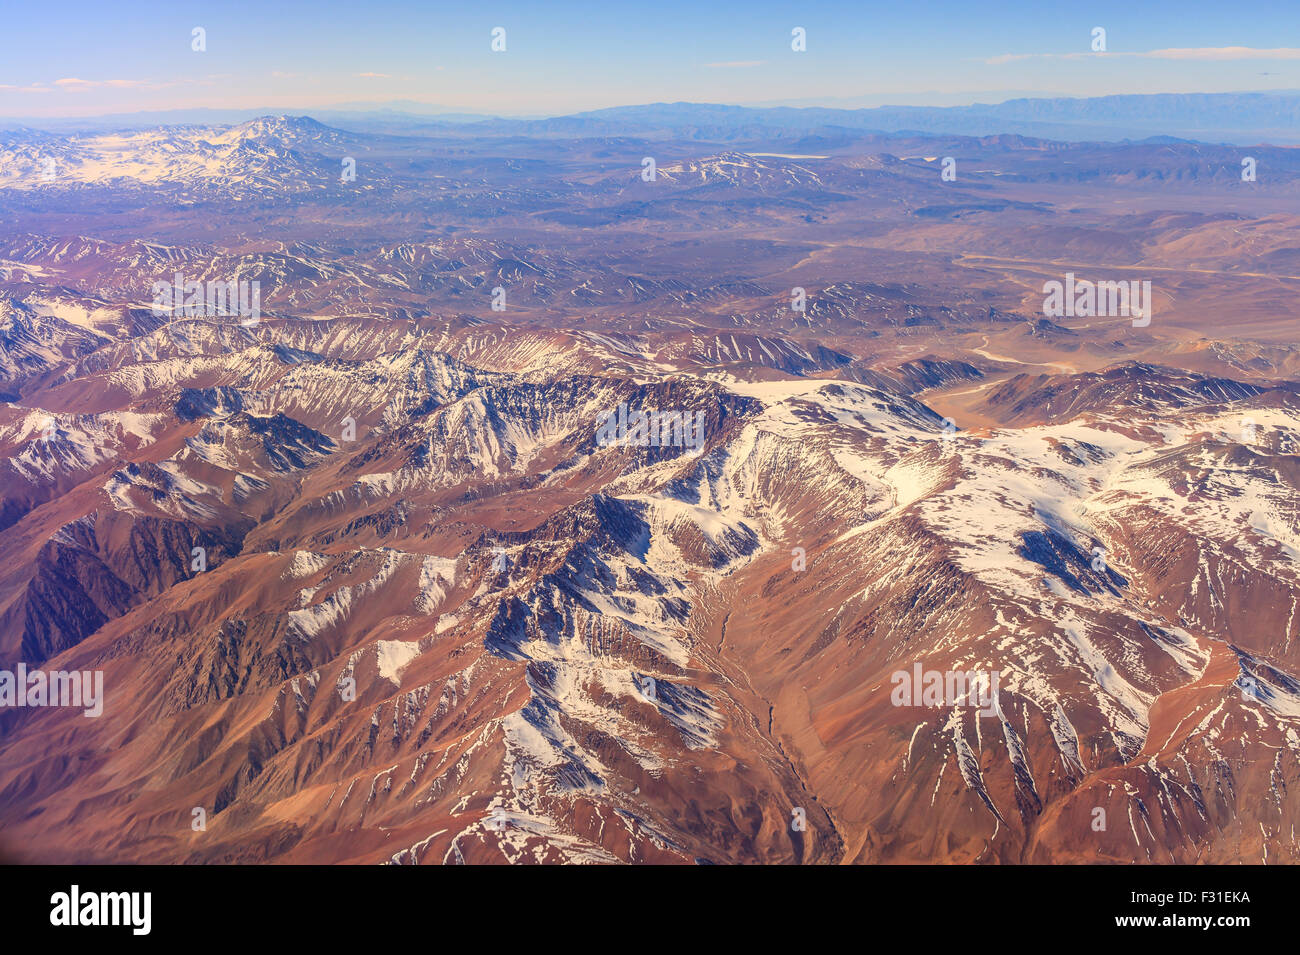 Aerial view of the Andes Mountains - Stock Image